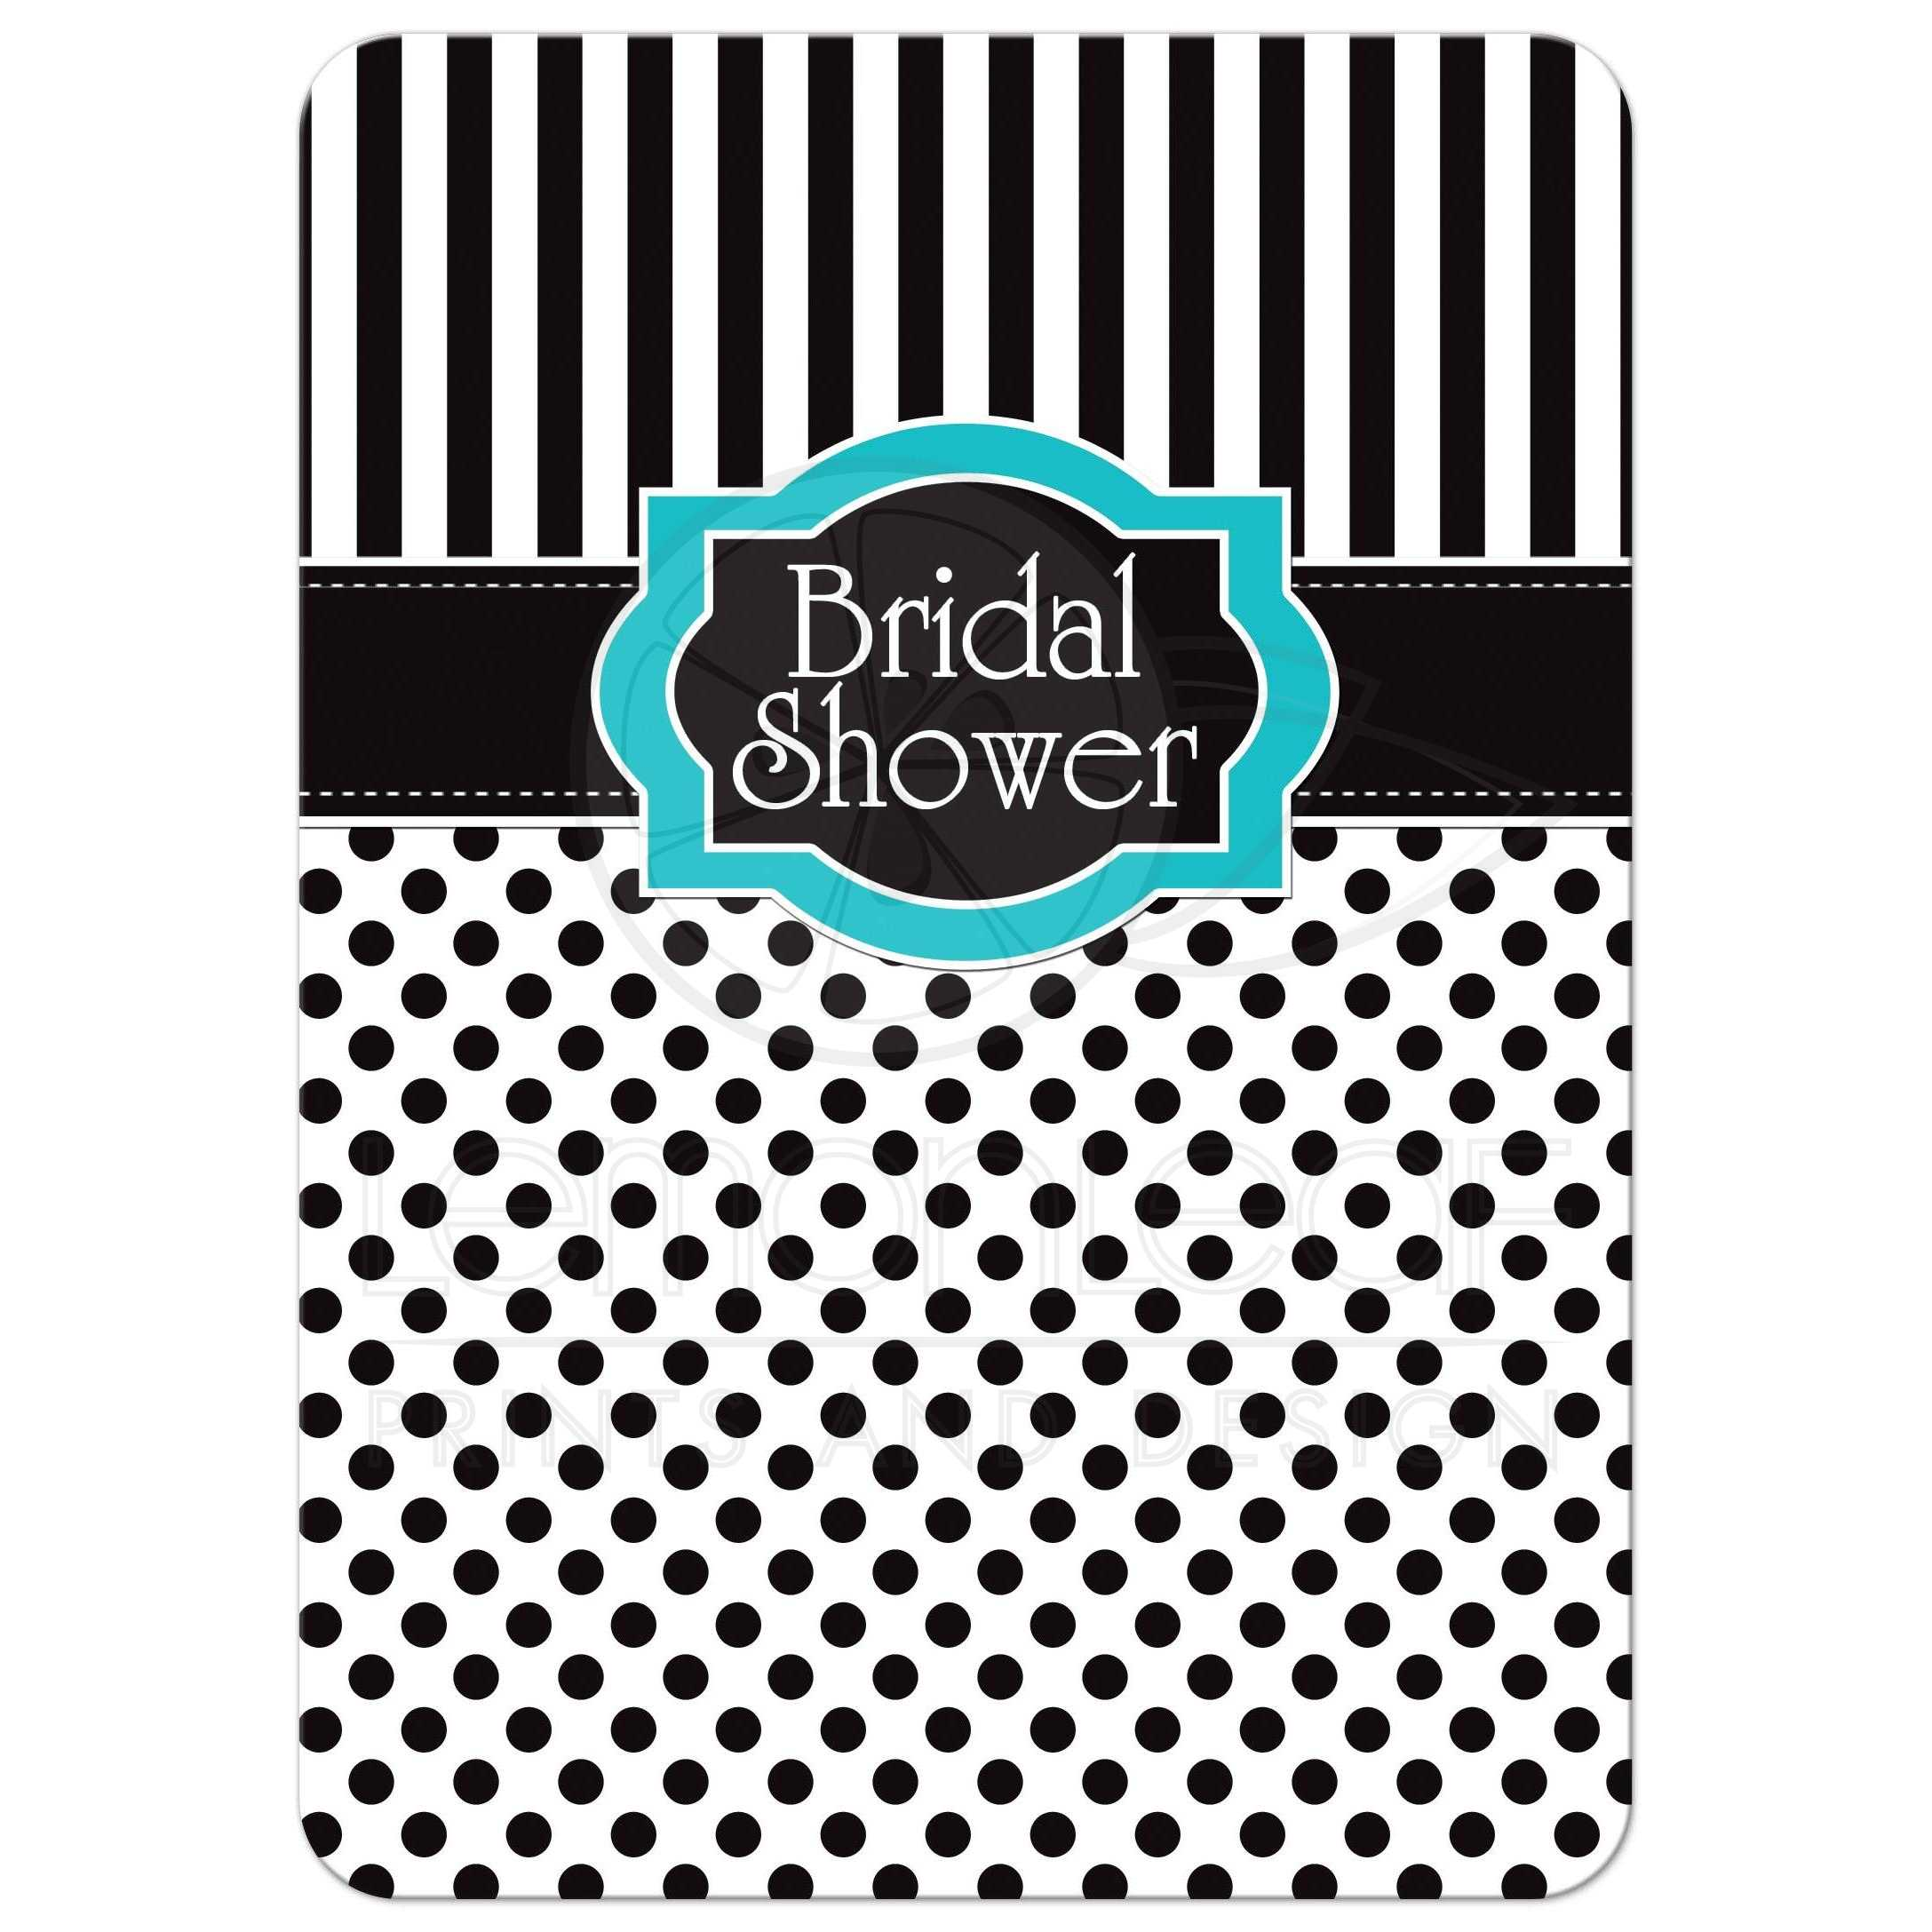 Bridal shower invitation black white turquoise polka dots stripes great black and white striped bridal or wedding shower invitation with polka dots and turquoise or filmwisefo